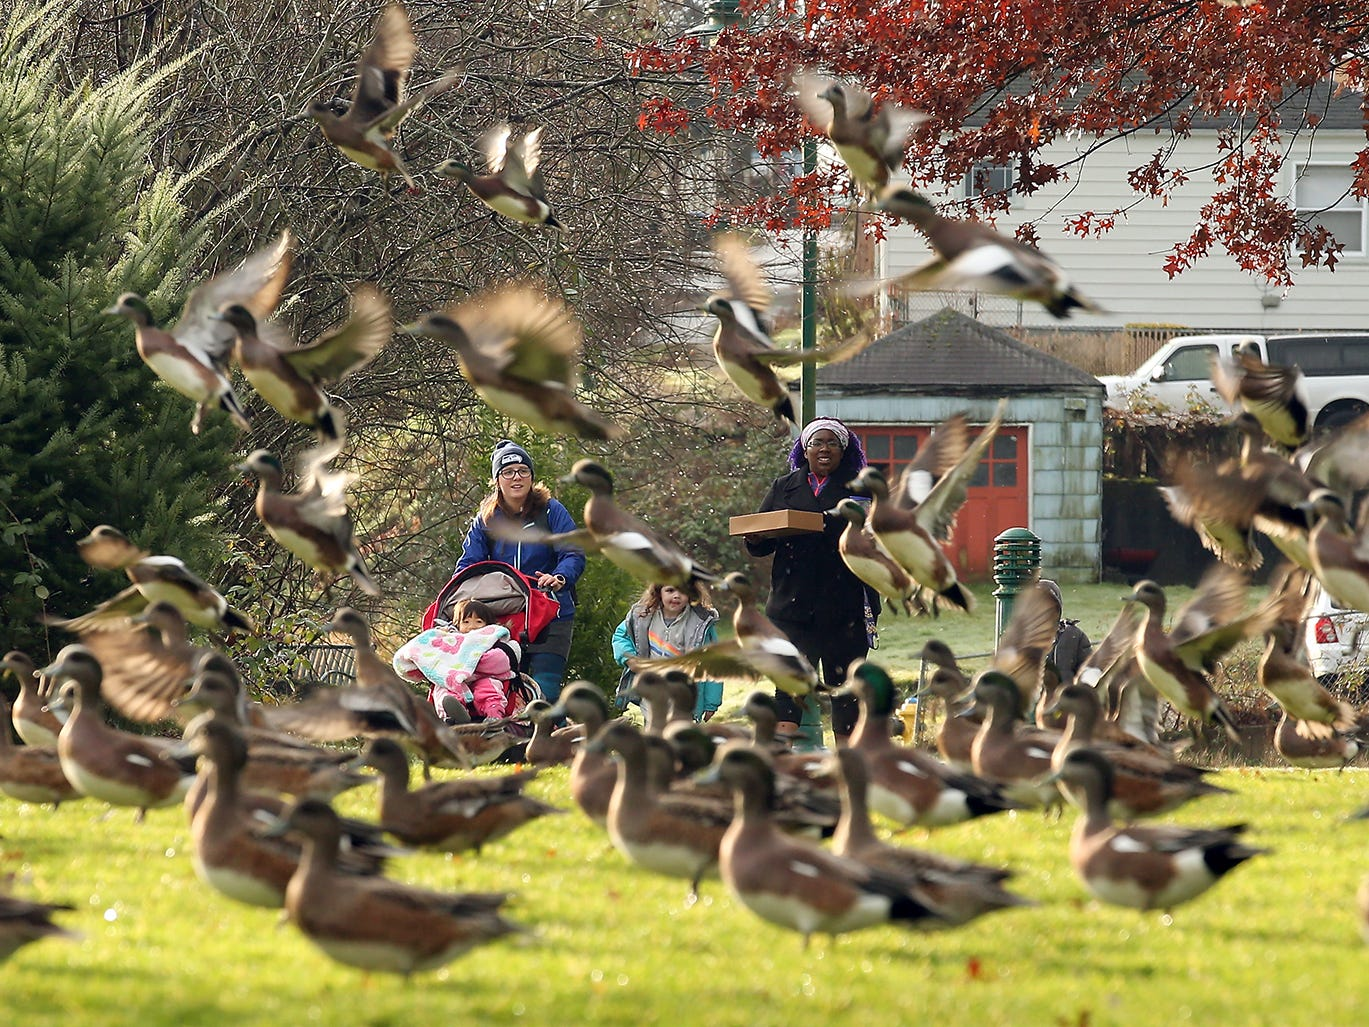 Kate Calixterio (left) with her kids Kora, 3, and Remi, 1, in the stroller are delighted as a large flock of wigeons take flight ahead of them as they walk along the path with Rylee Schaffer 4, (center) and Shalynn Pugh with son Jaden, 4, at Evergreen Rotary Park in Bremerton on Friday, January 11, 2019. Calixterio and Pugh are part of No Excuse Mom Kitsap -a group for moms and their kids that get together and workout- and had walked the kids from the park to Larry and Kristi's bakery as part of the group's Doughnut Friday event.